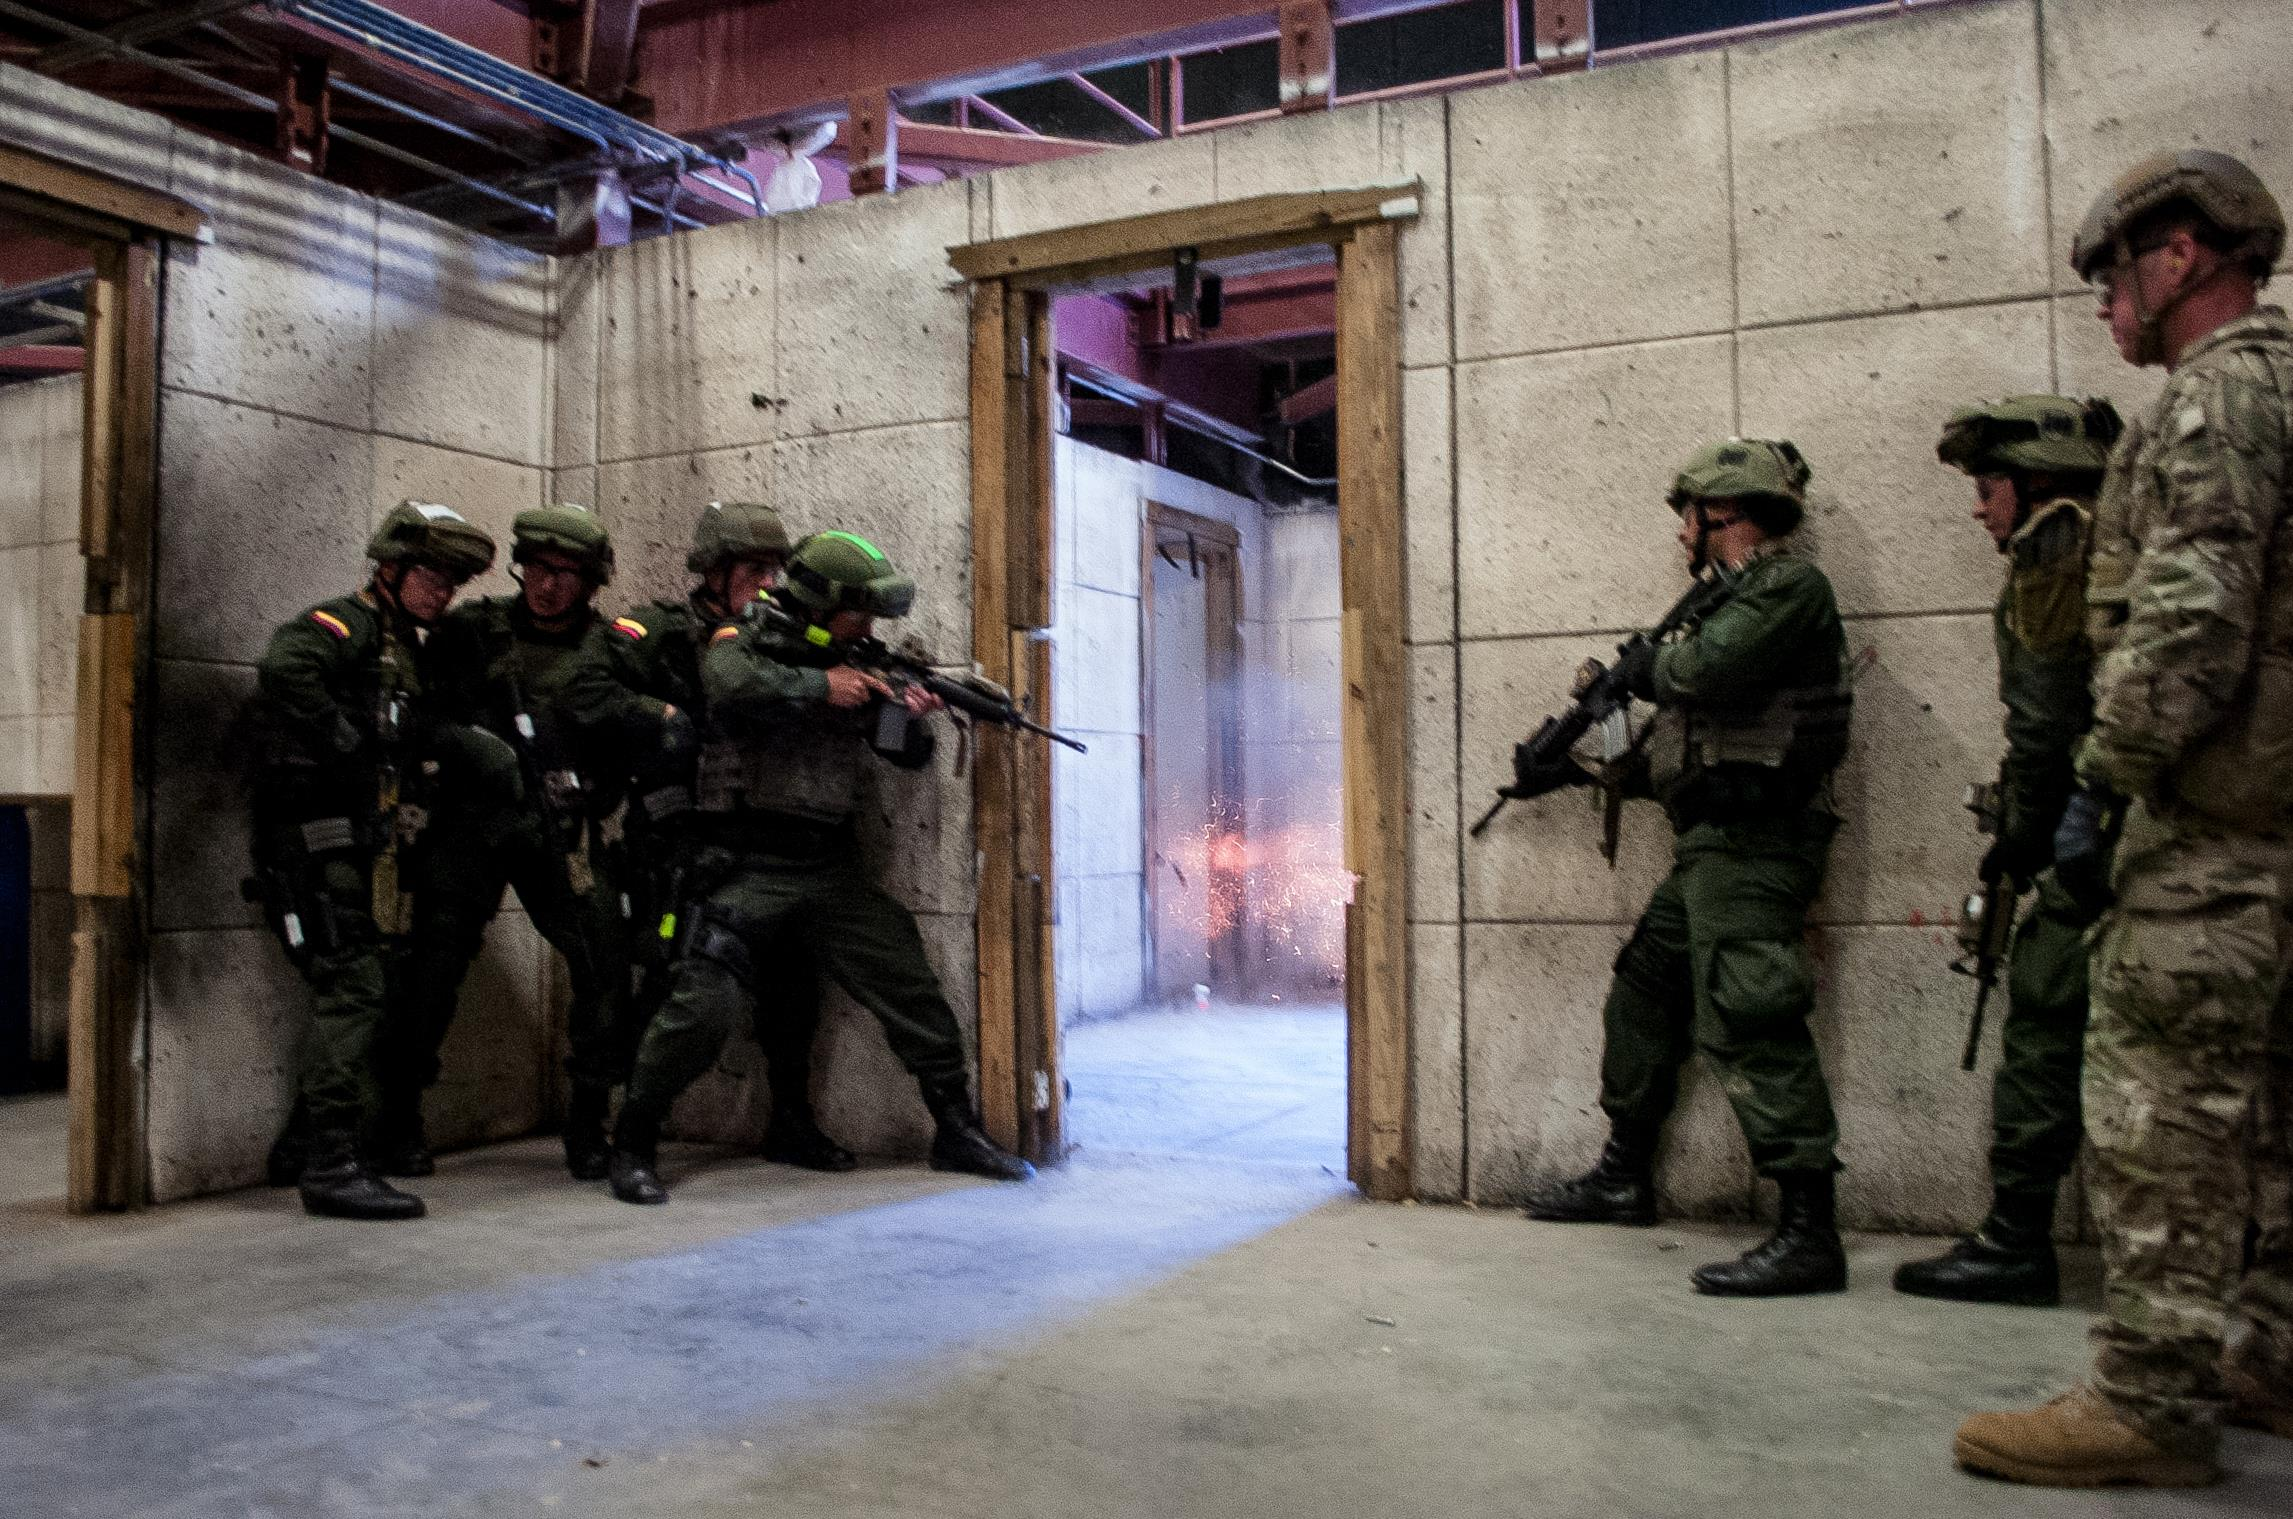 An explosive door-breaching charge detonates during a live-fire exercise as members of & U.S. DEPARTMENT OF DEFENSE u003e Photos u003e Photo Gallery